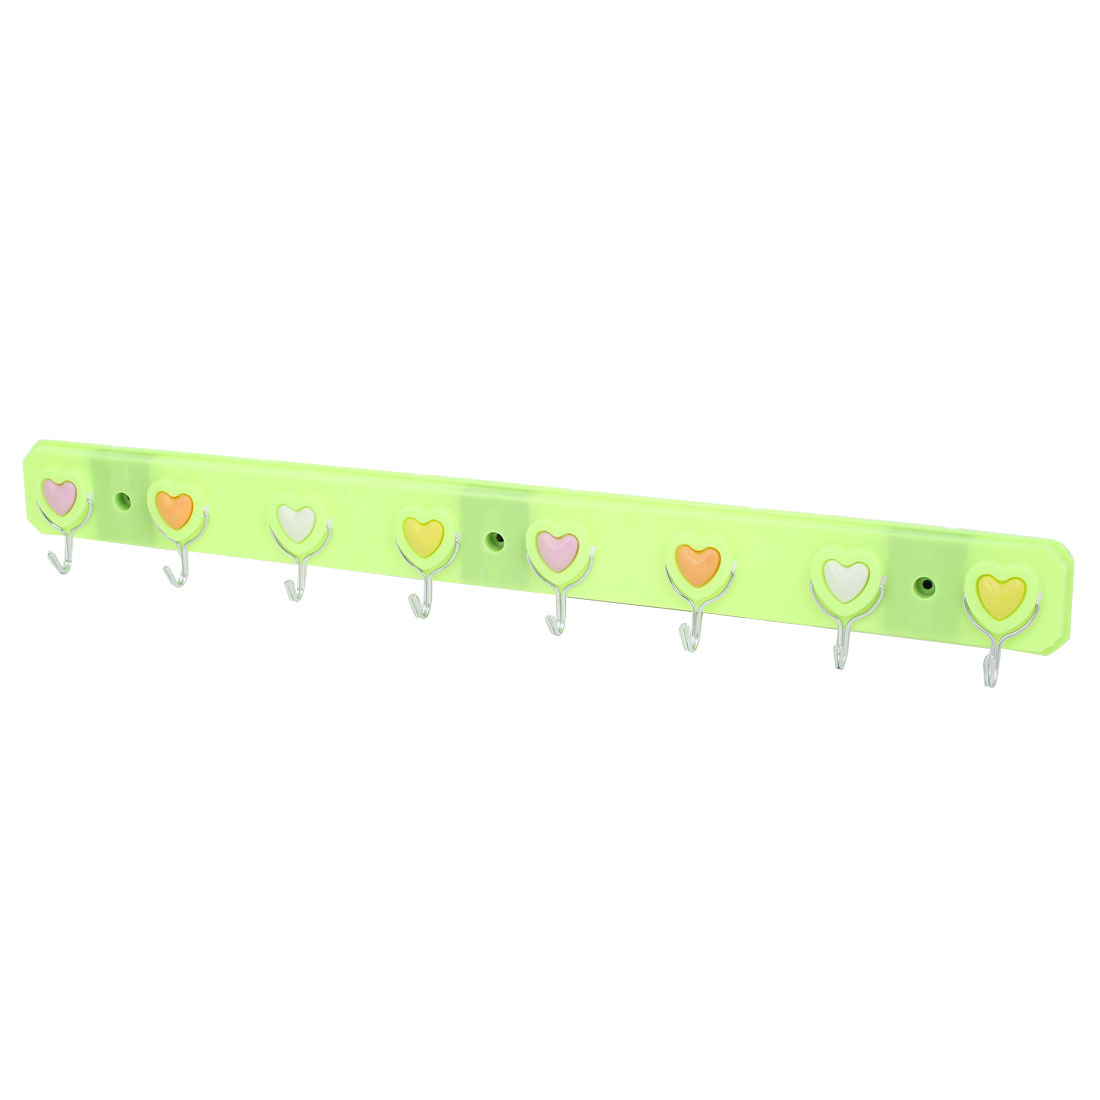 Home Bedroom Bathroom Hat Clothes Towel Heart Pattern Wall Mounted Self Adhesive 8-Hooks Plastic Hanger Rack Holder Green